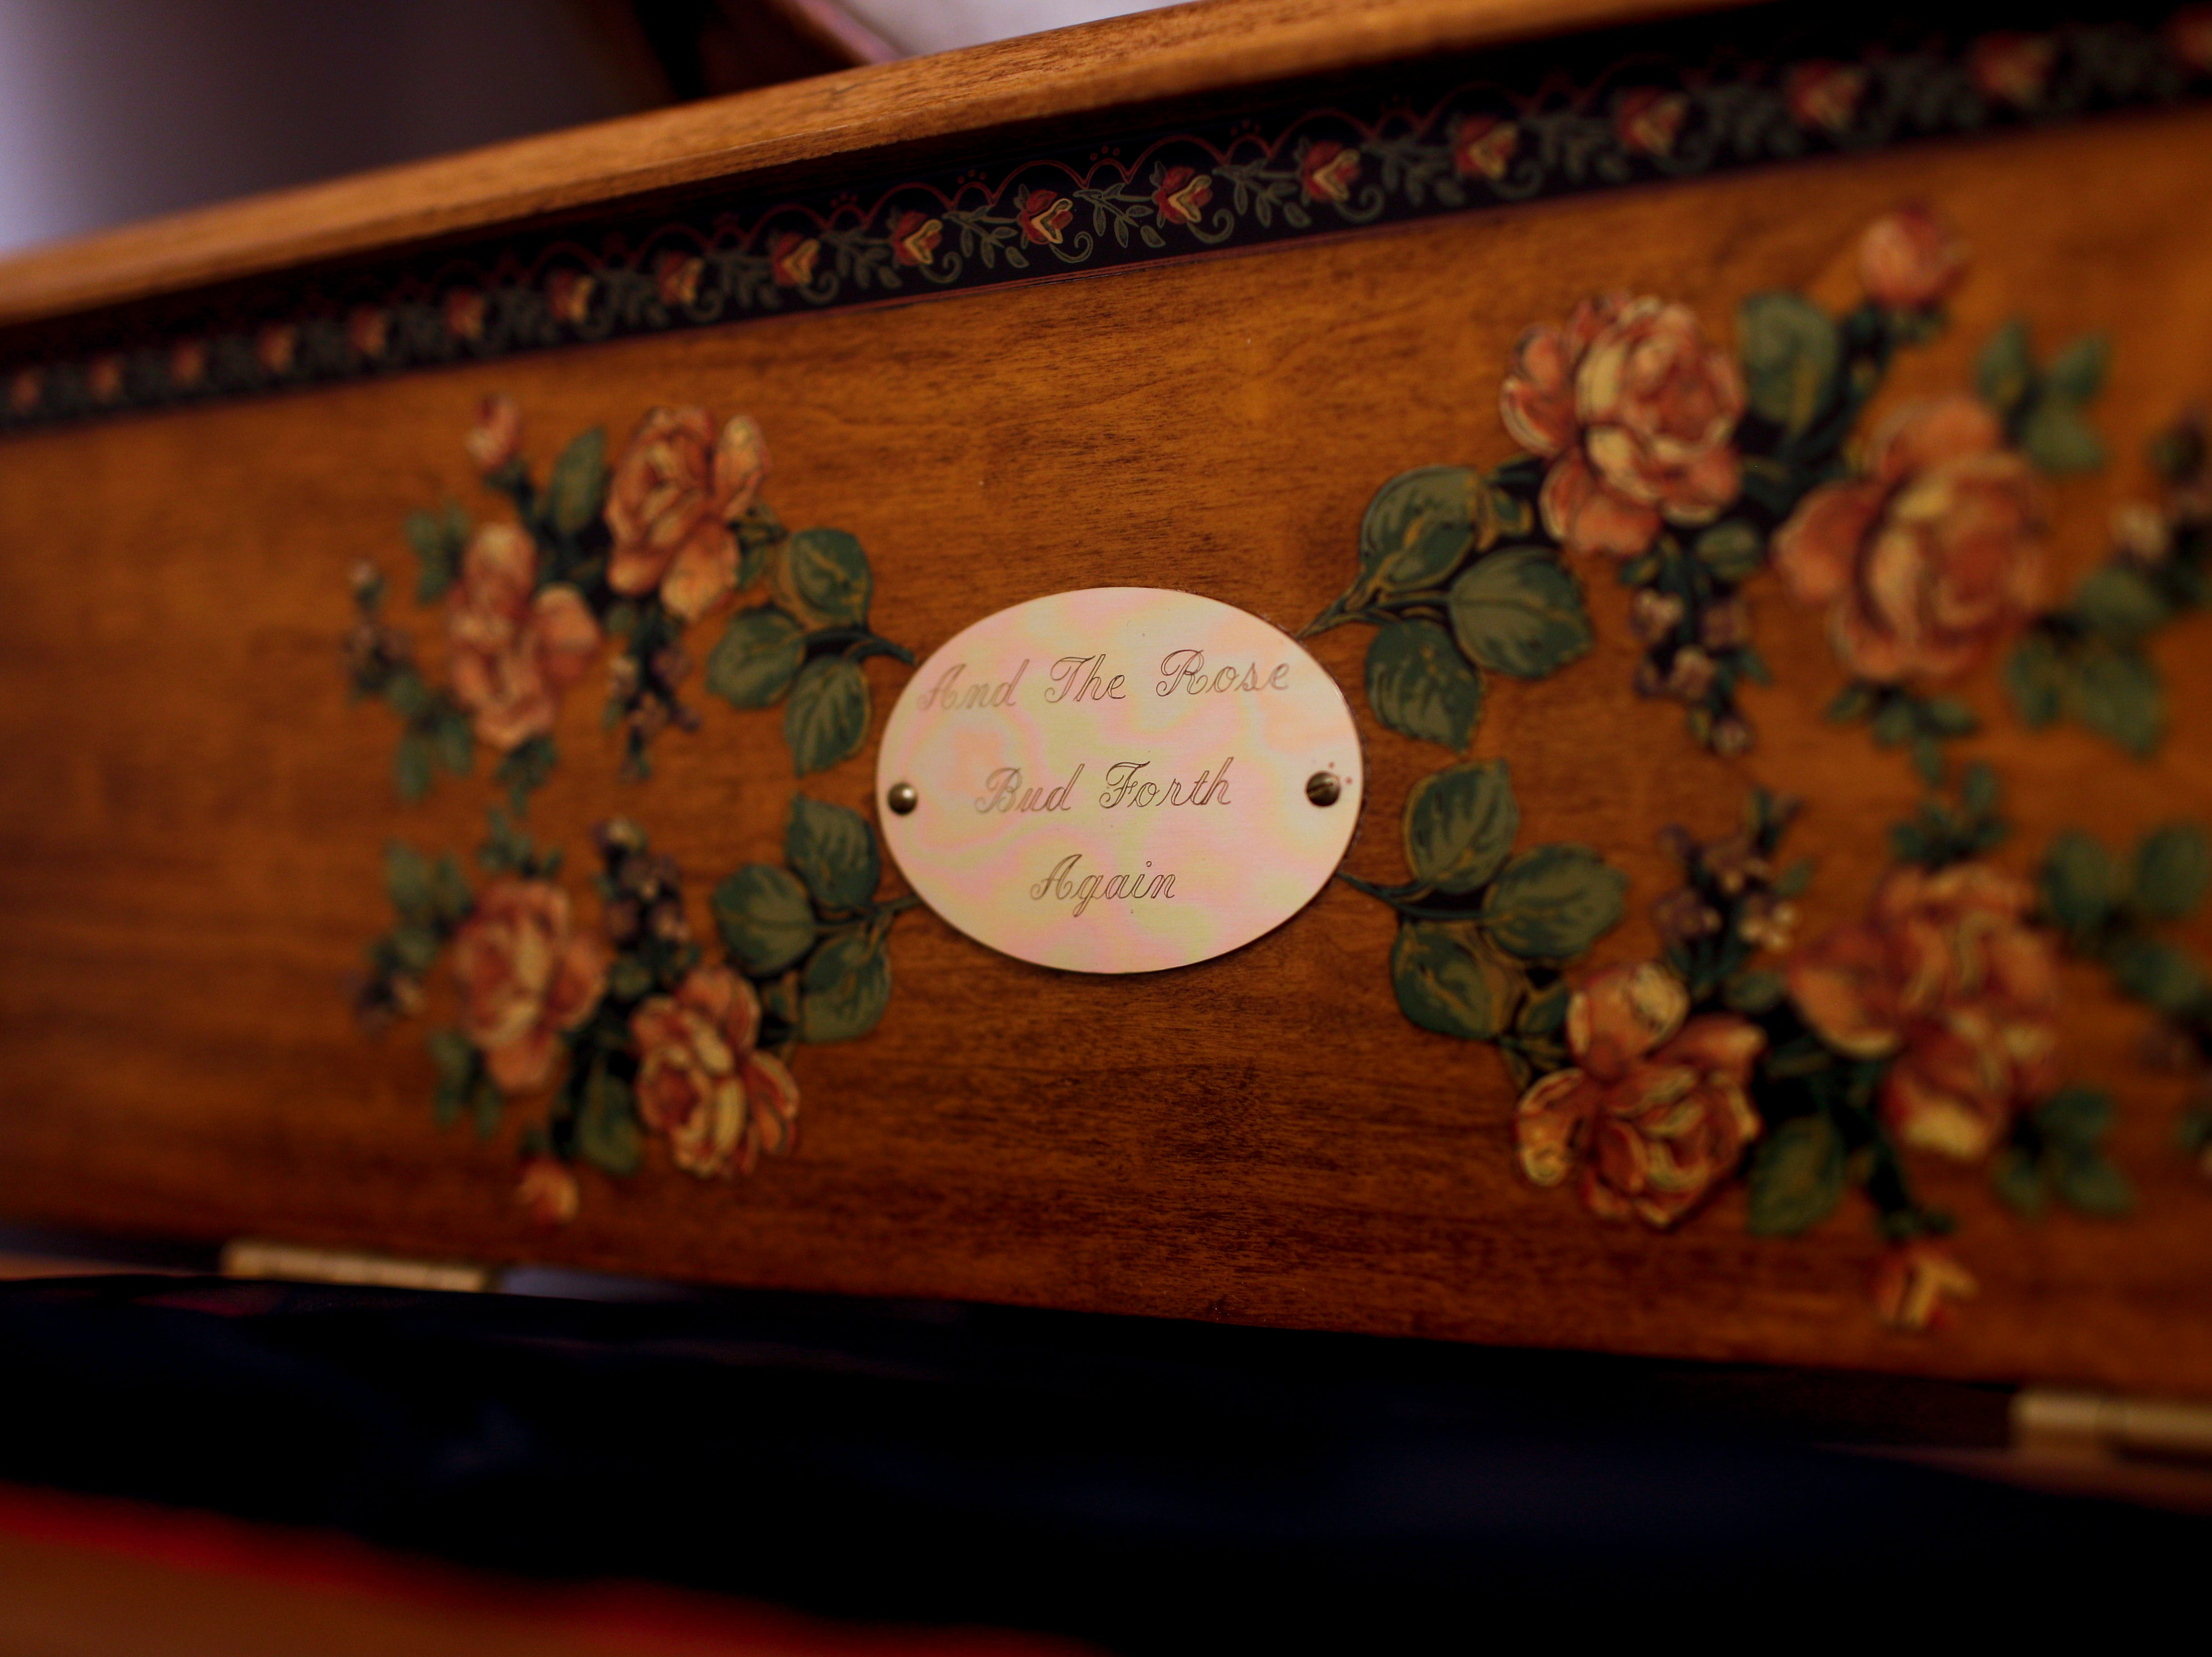 A box that contains drapes for use when a lodge member passes away are kept in an old box at Odd Fellow Lodge in Clarksville, Tenn., on Tuesday, April 23, 2019.